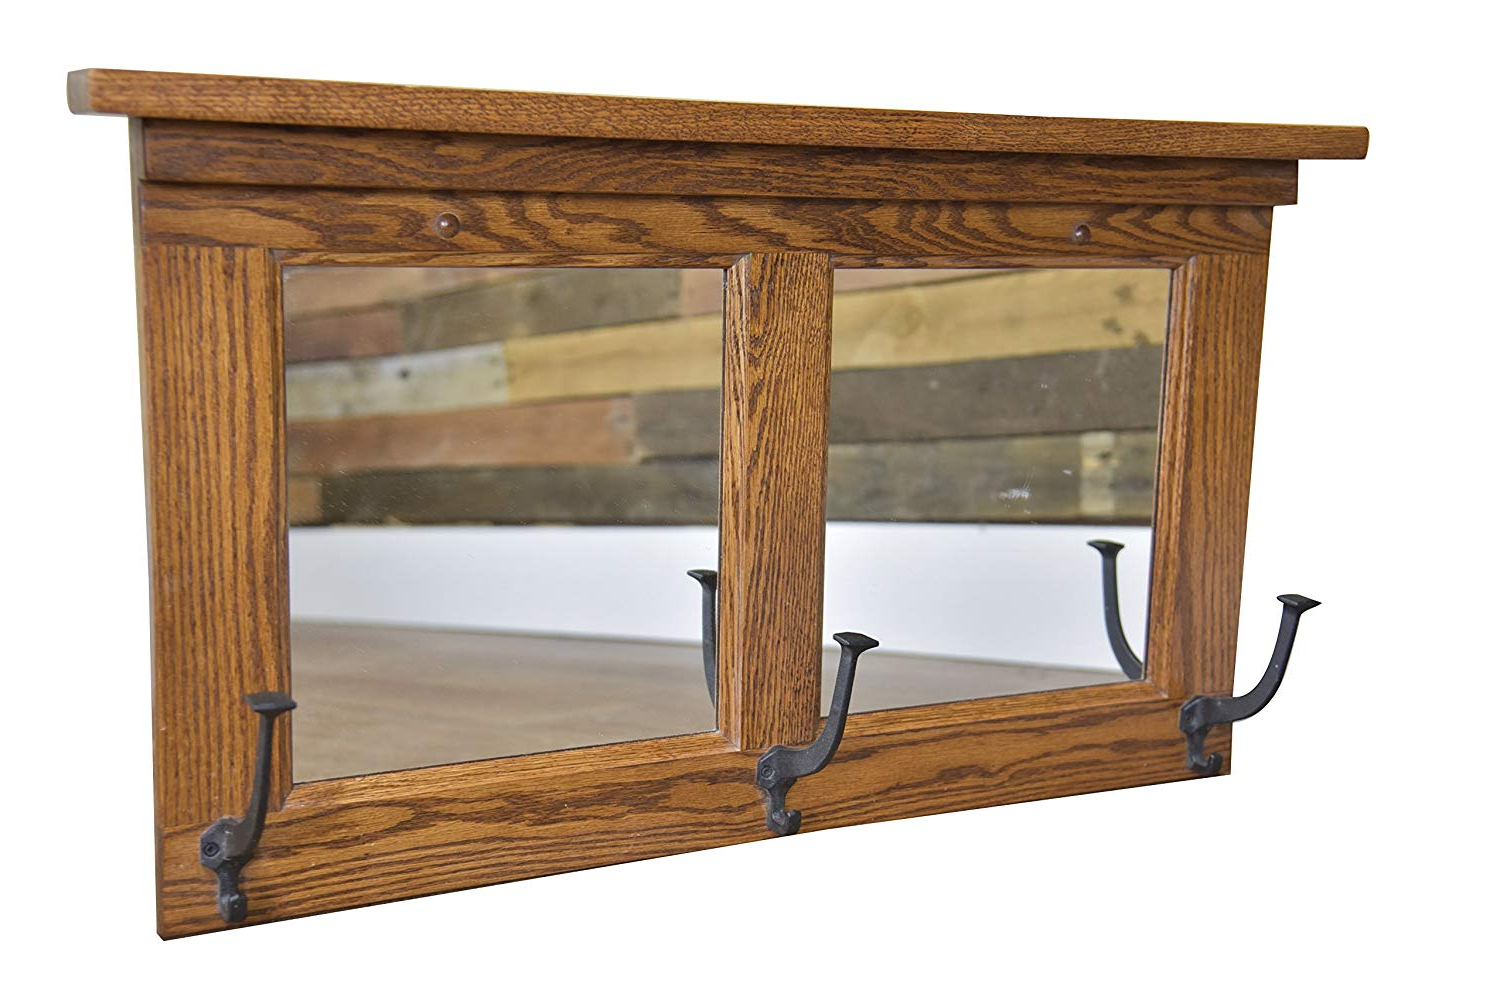 Famous Wall Mirrors With Hooks And Shelf In Wood Mirror Coat Rack Hanger Wall Mounted, Mission, 2 Panel, 3 Hook, Oak  Wood, Michaels Stain (Gallery 3 of 20)